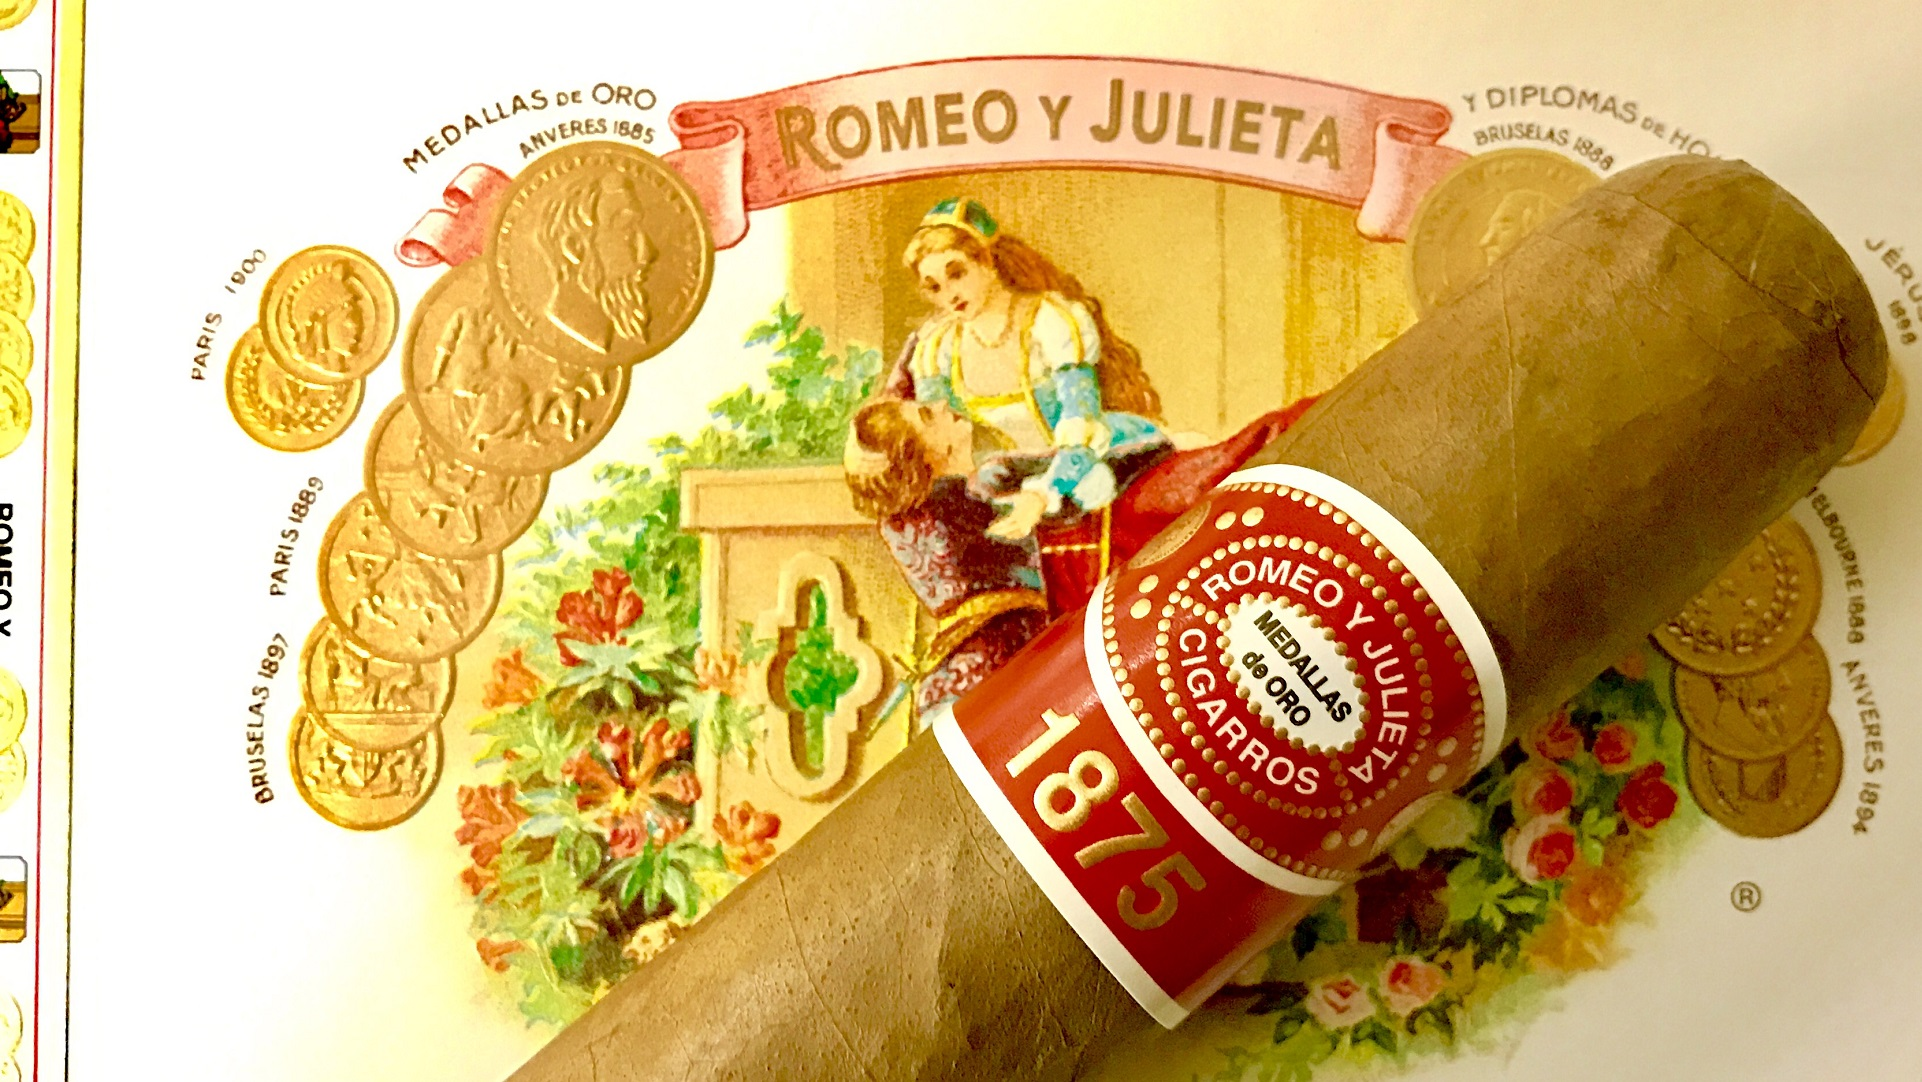 Romeo y Julieta 1875 Bully - Box of 25 image